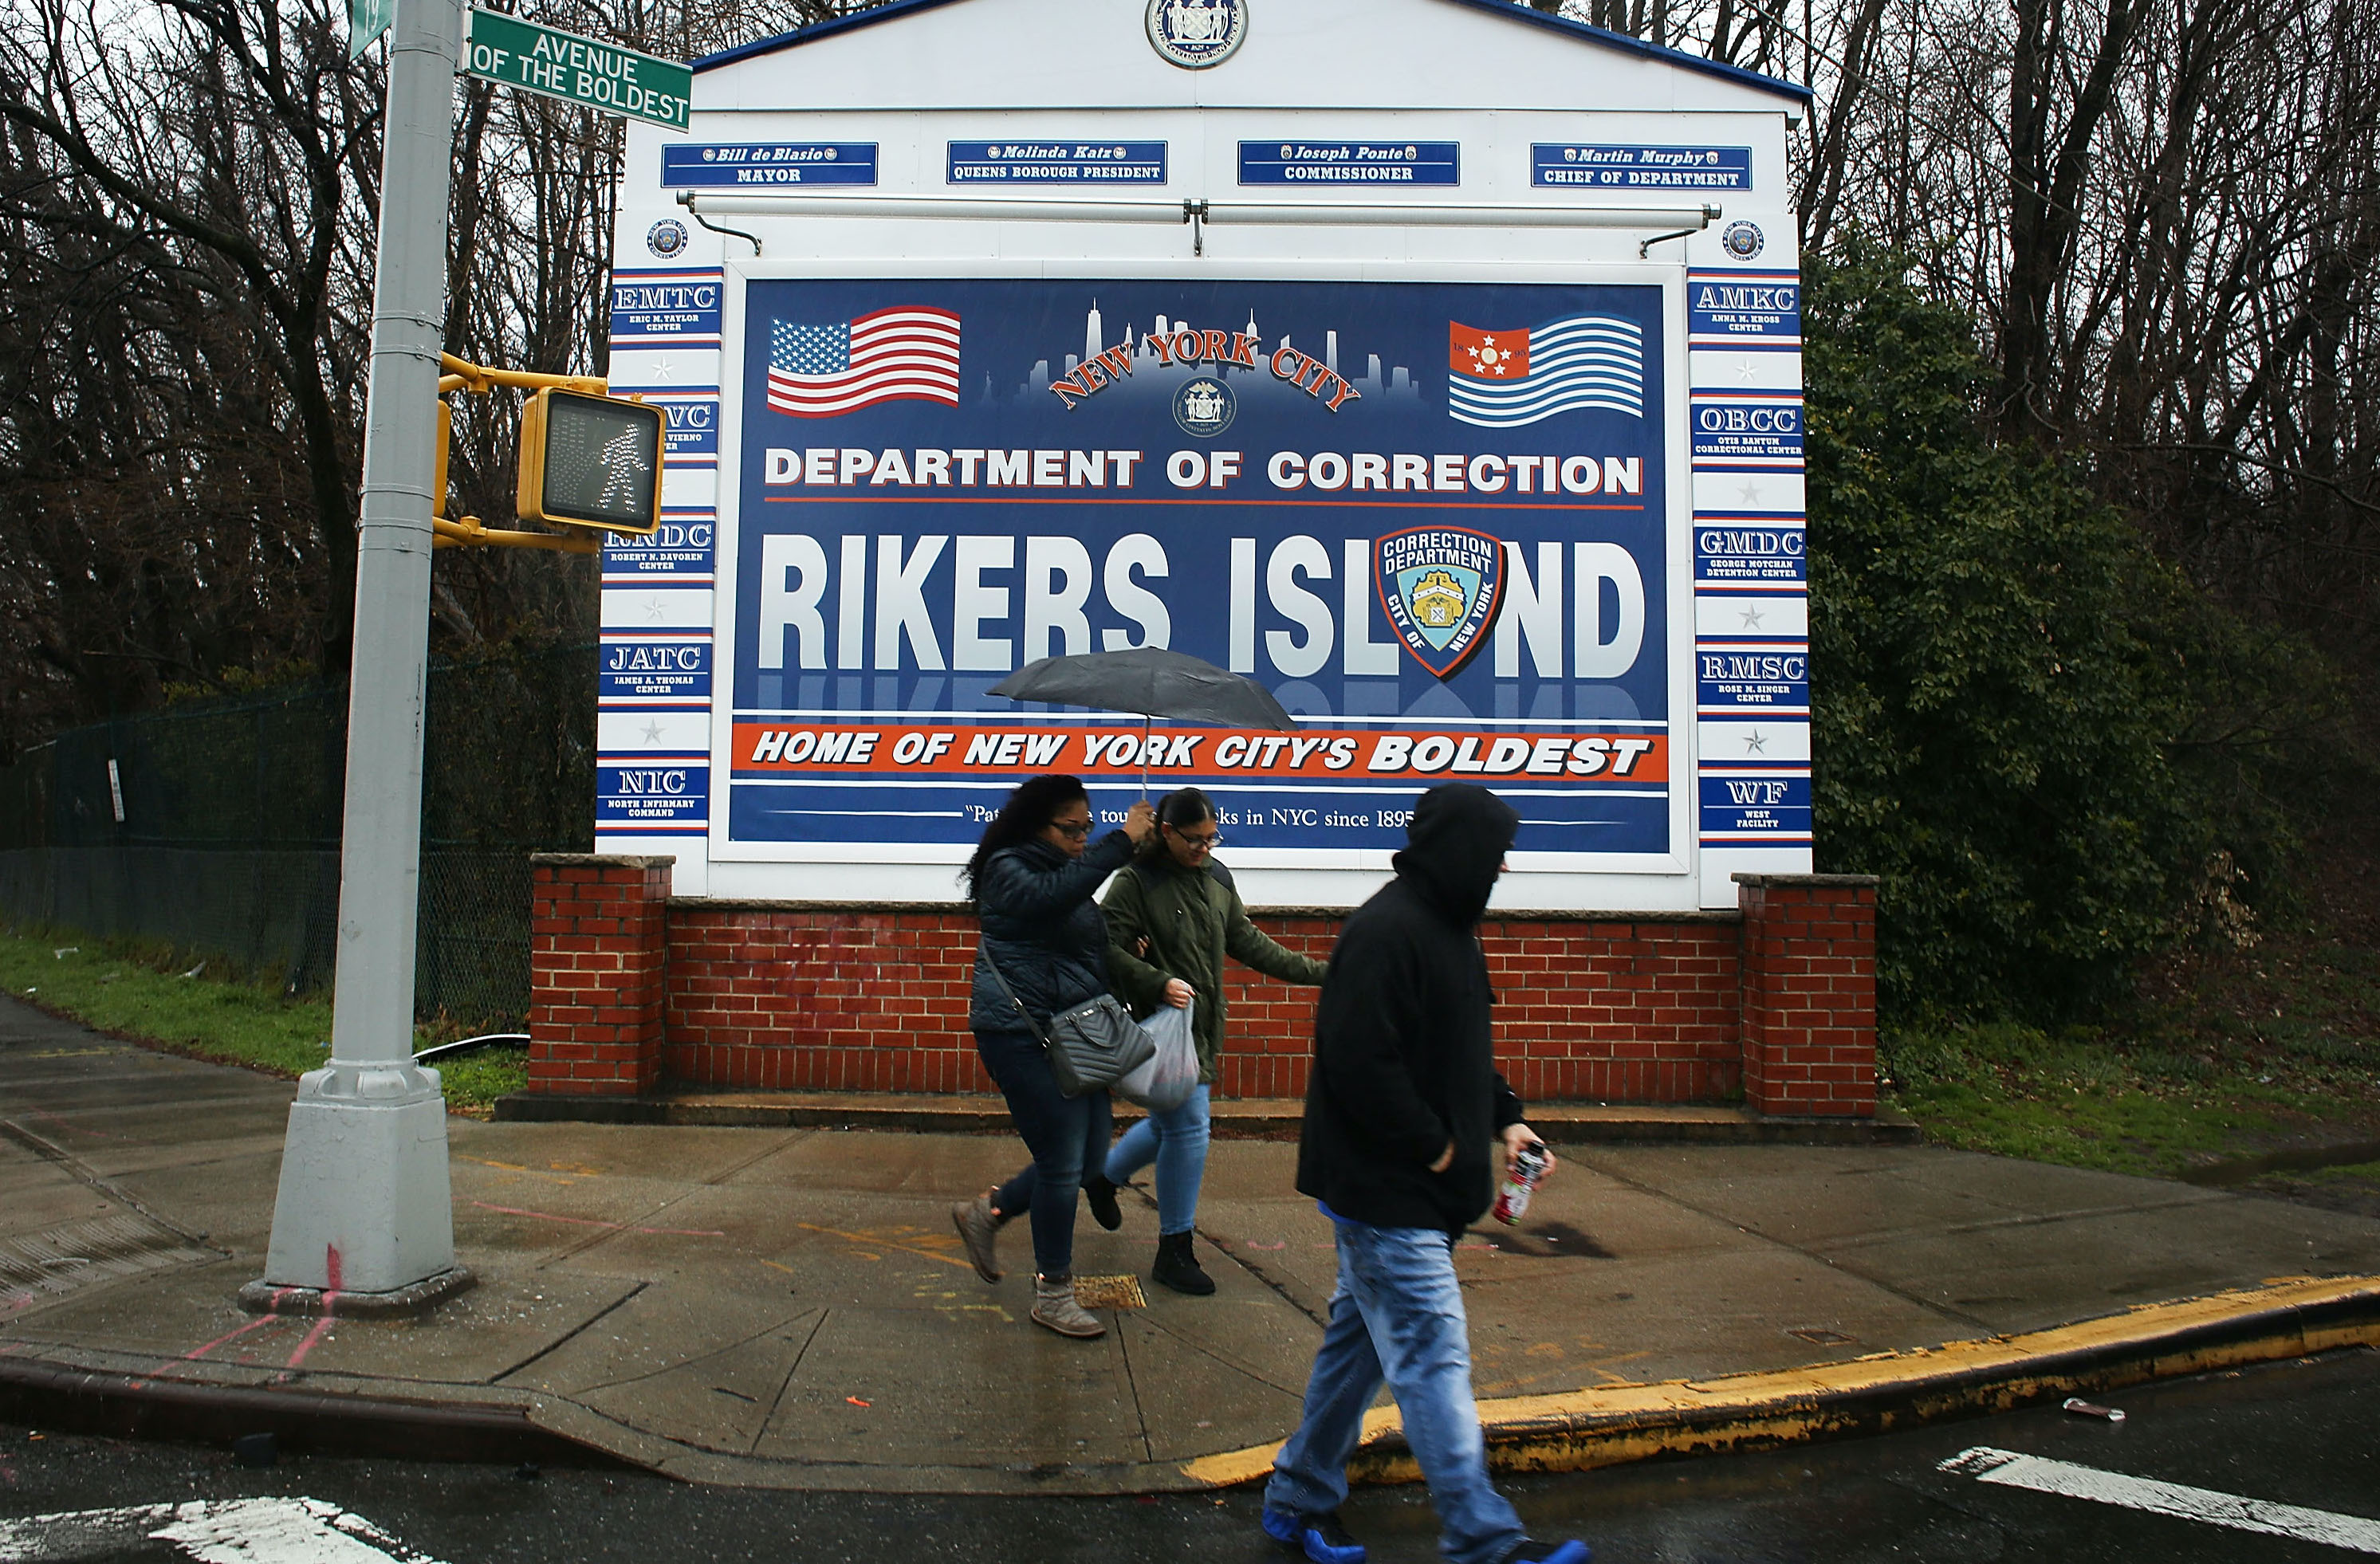 People walk by a sign at the entrance to Rikers Island on March 31, 2017 in New York City.